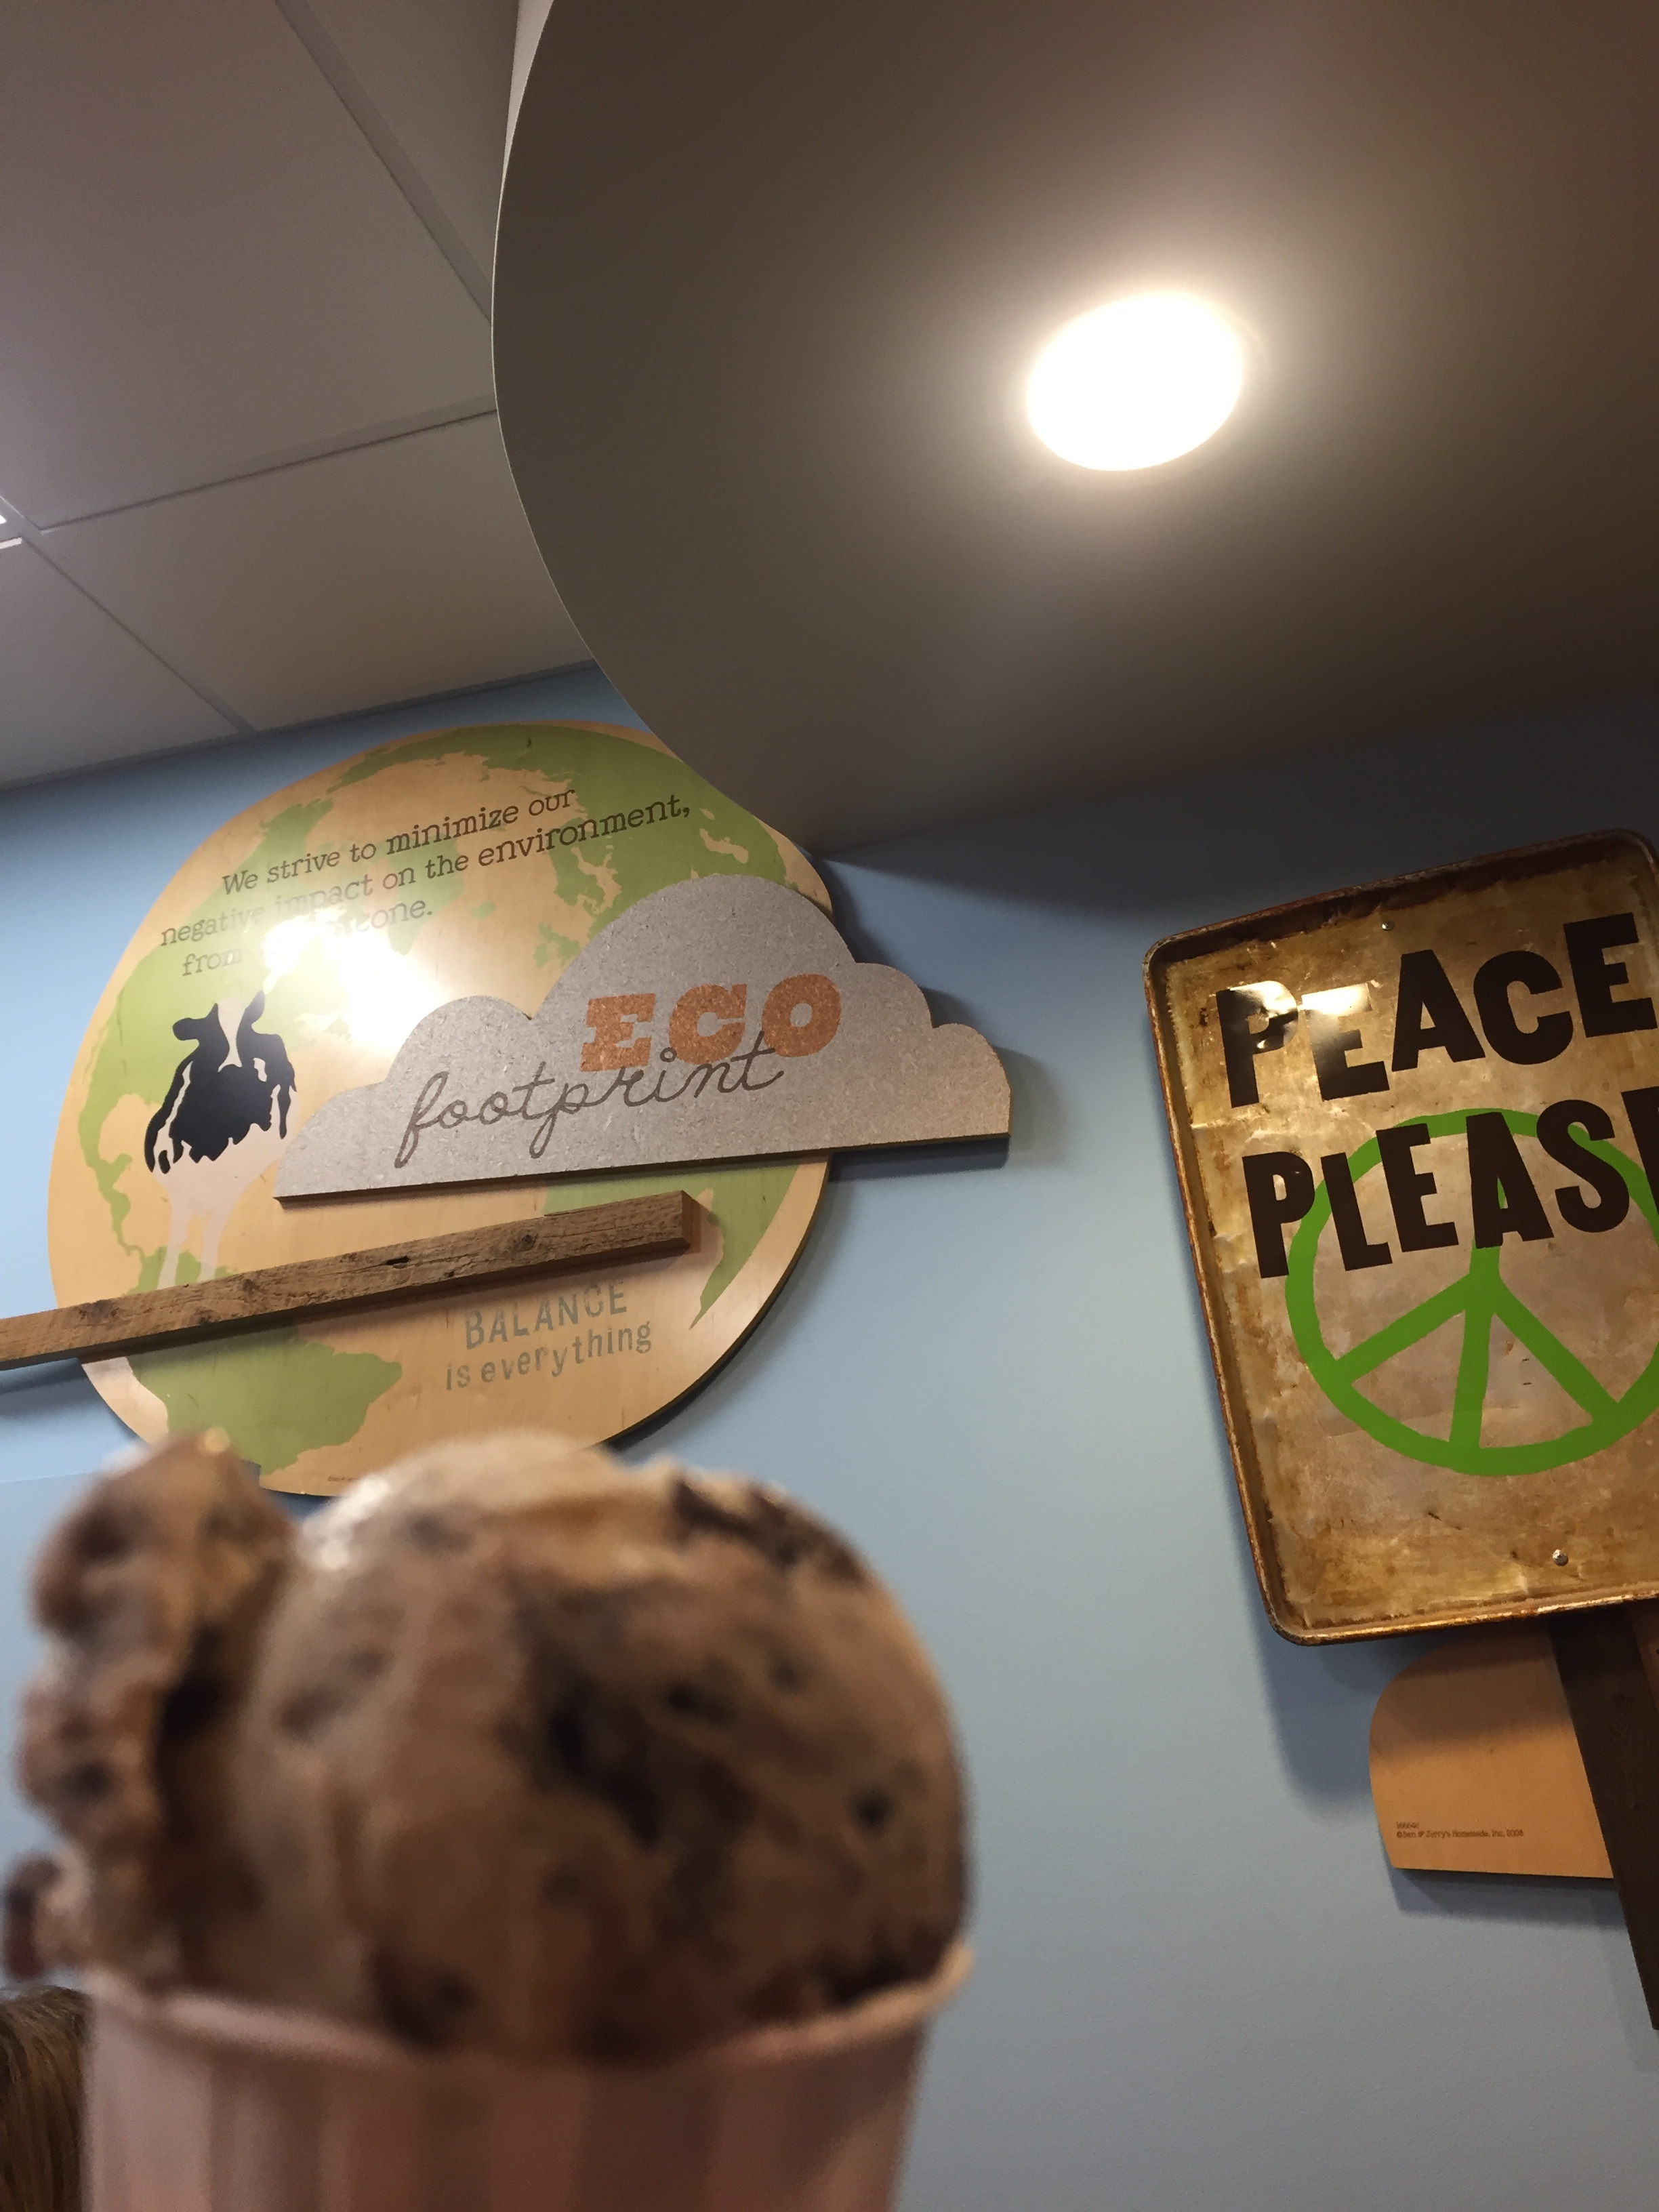 Sample of ice cream in the original room where Ben & Jerry's flavors were started.